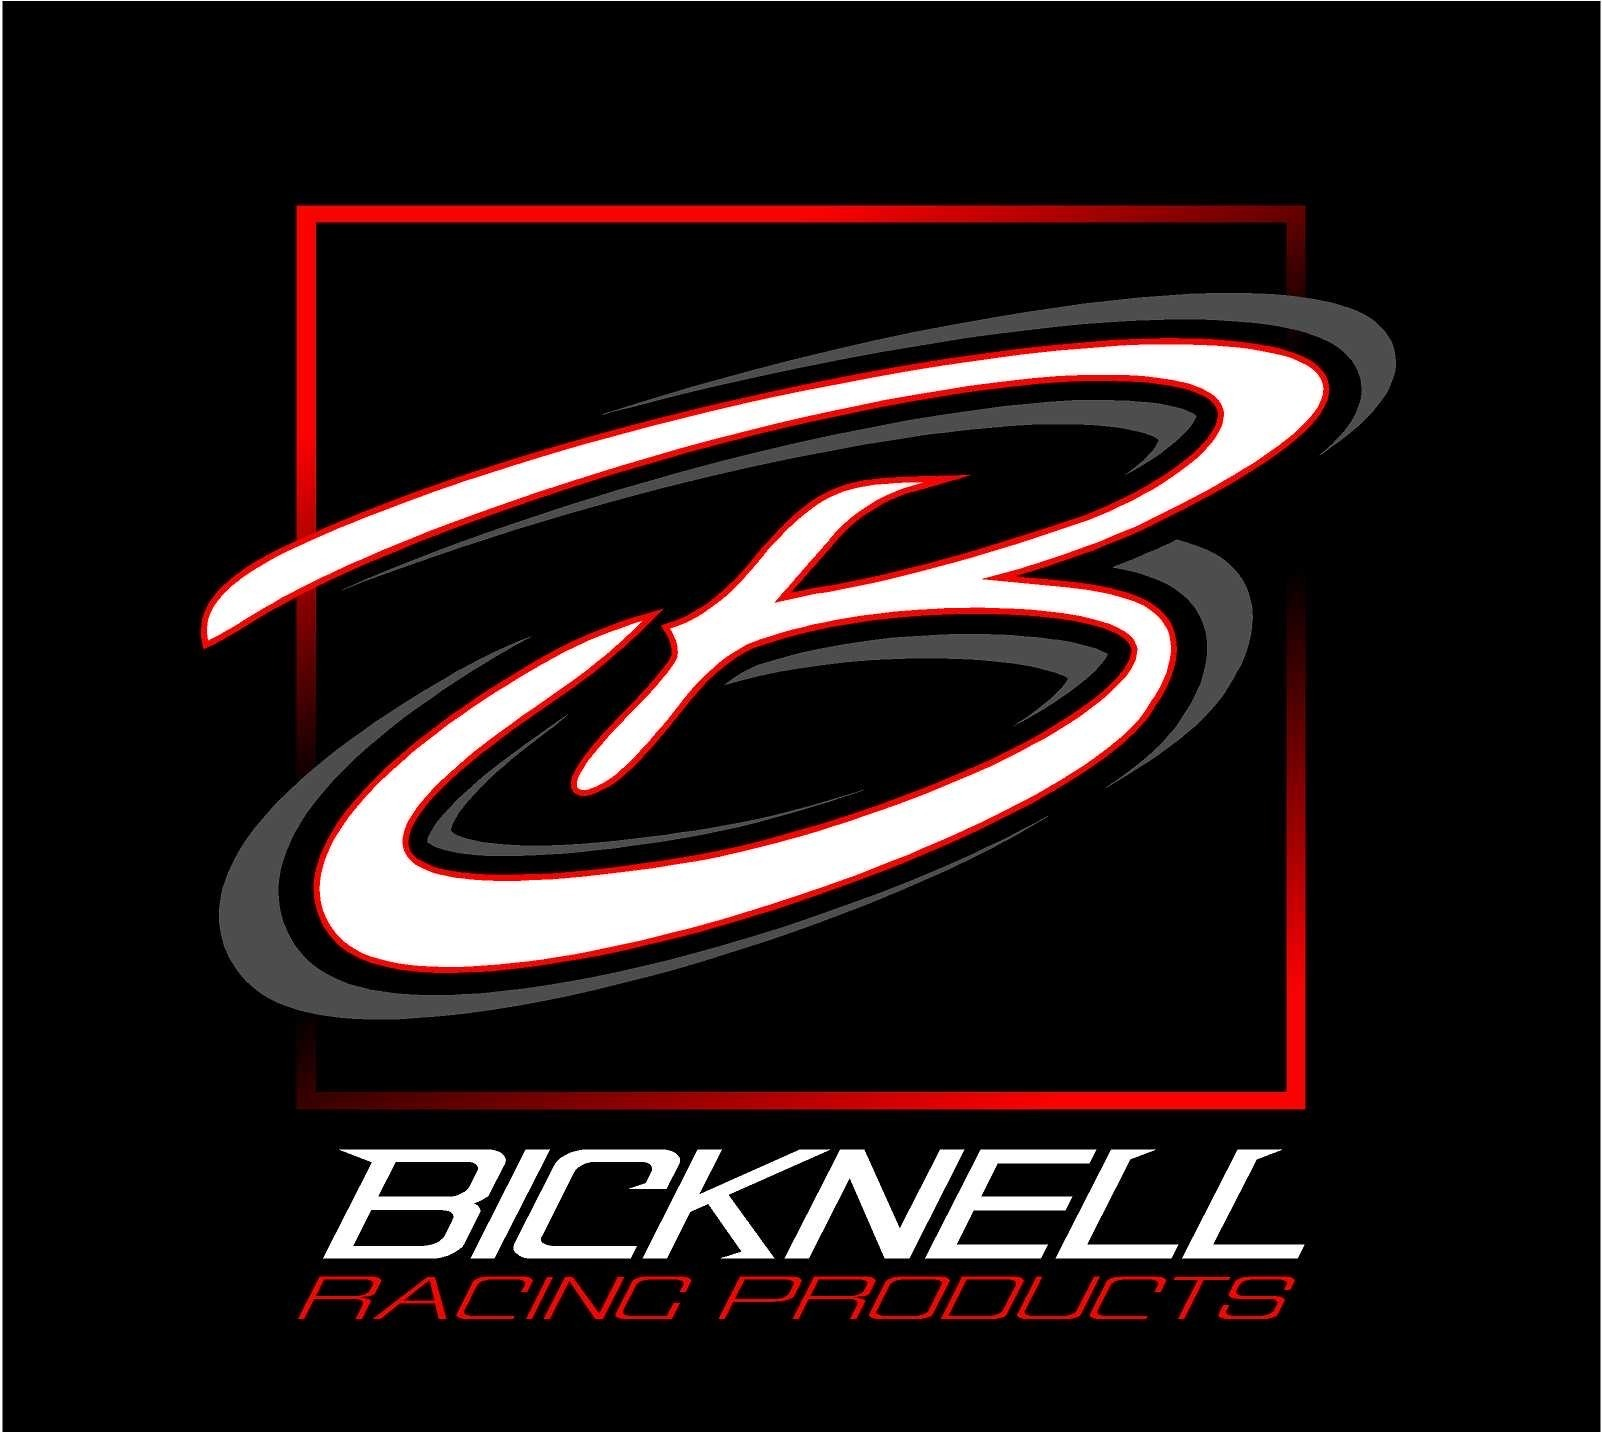 Bicknell Racing Products Logo